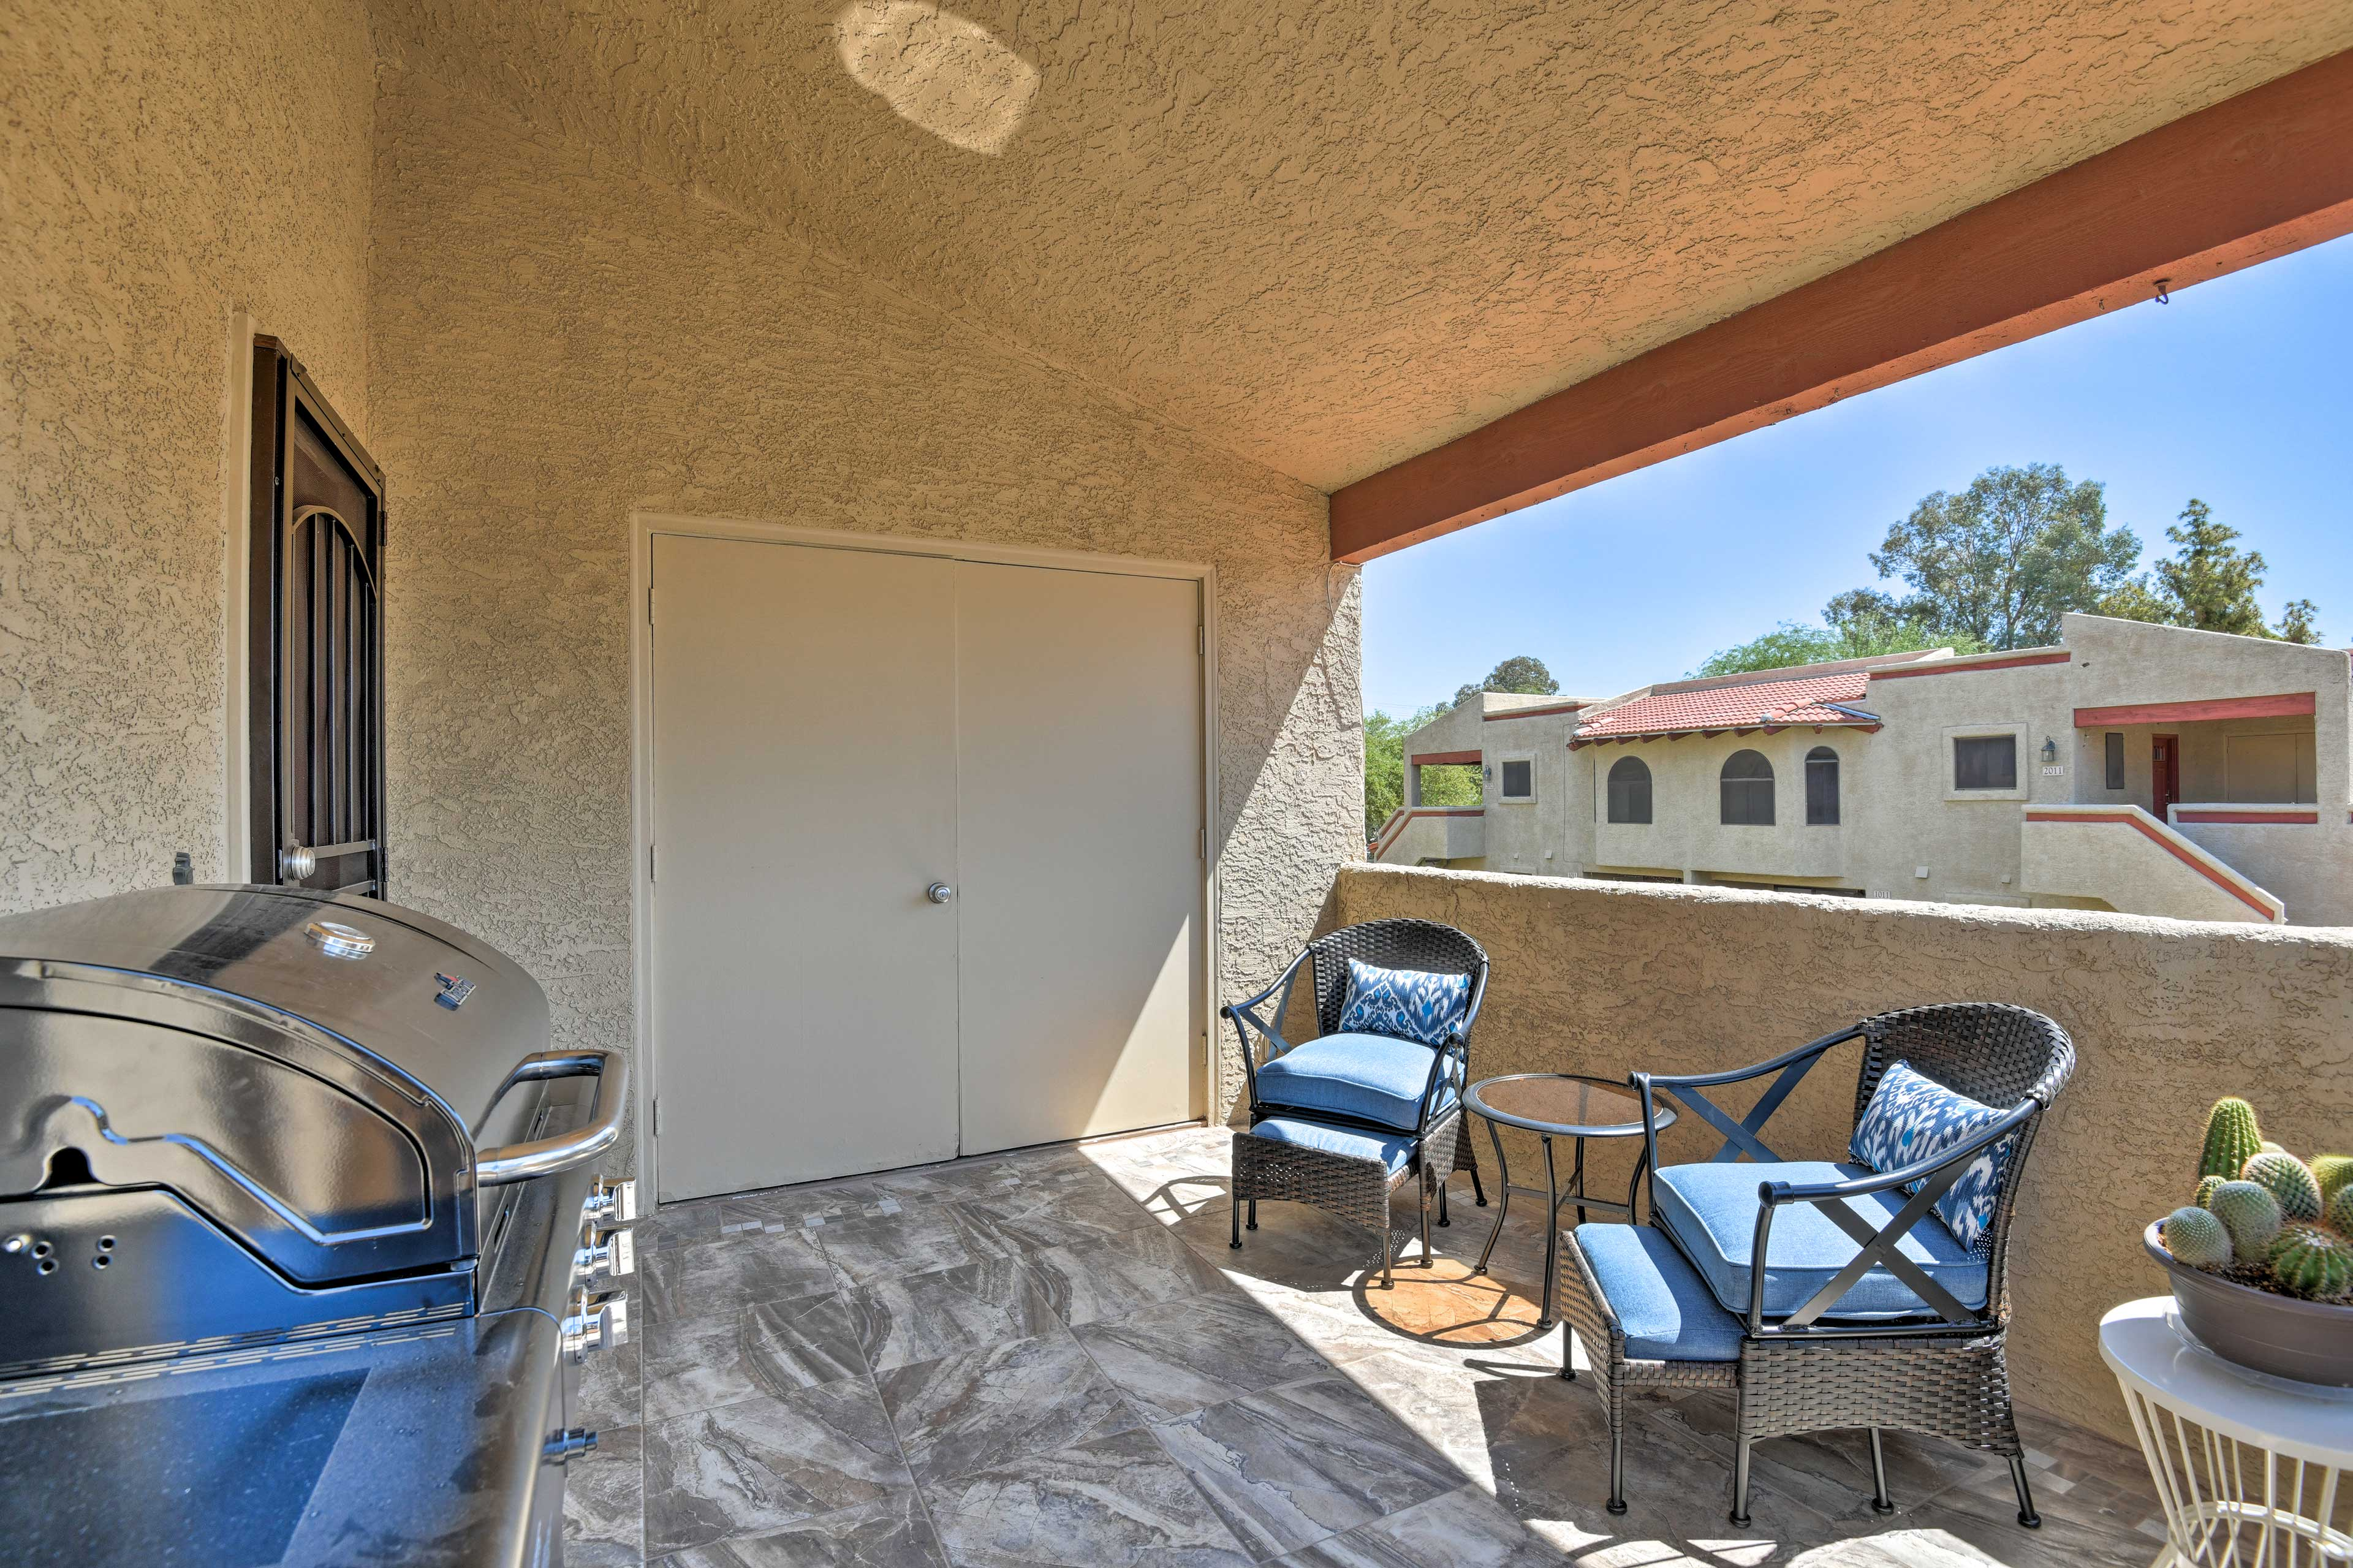 This 1,120-square-foot unit features 2 bedrooms and 2 bathrooms.